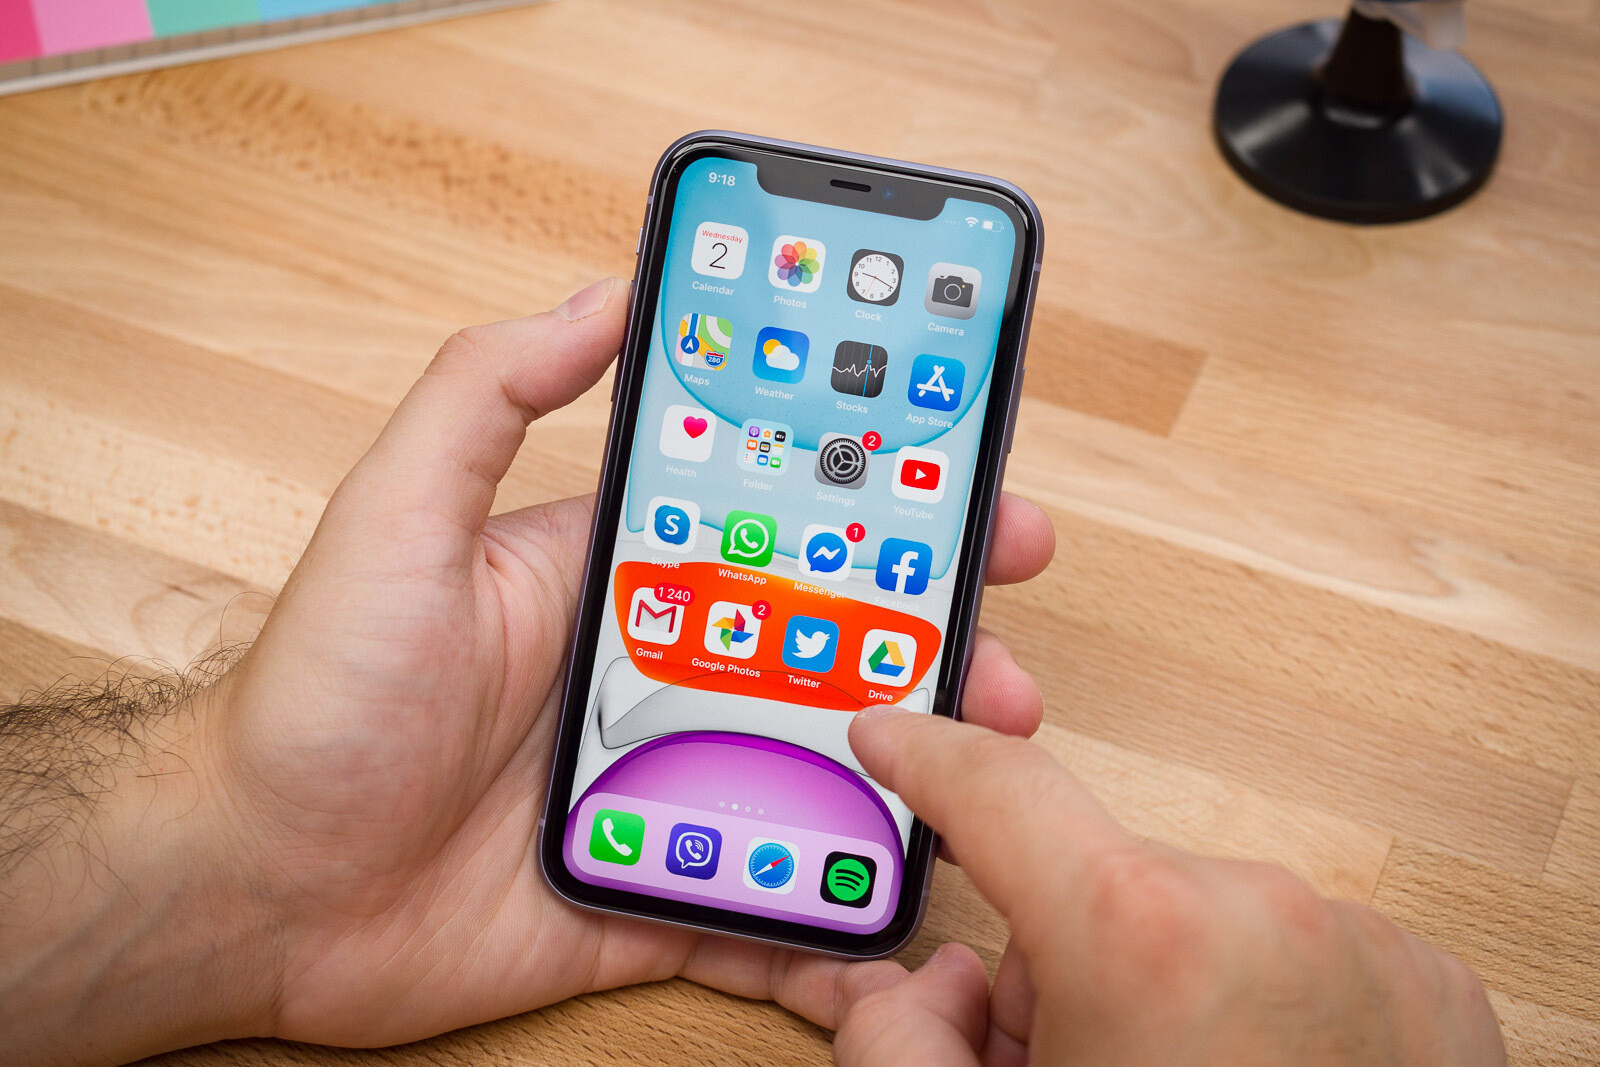 Which iPhone 11 storage option should I get? Is 64GB enough?